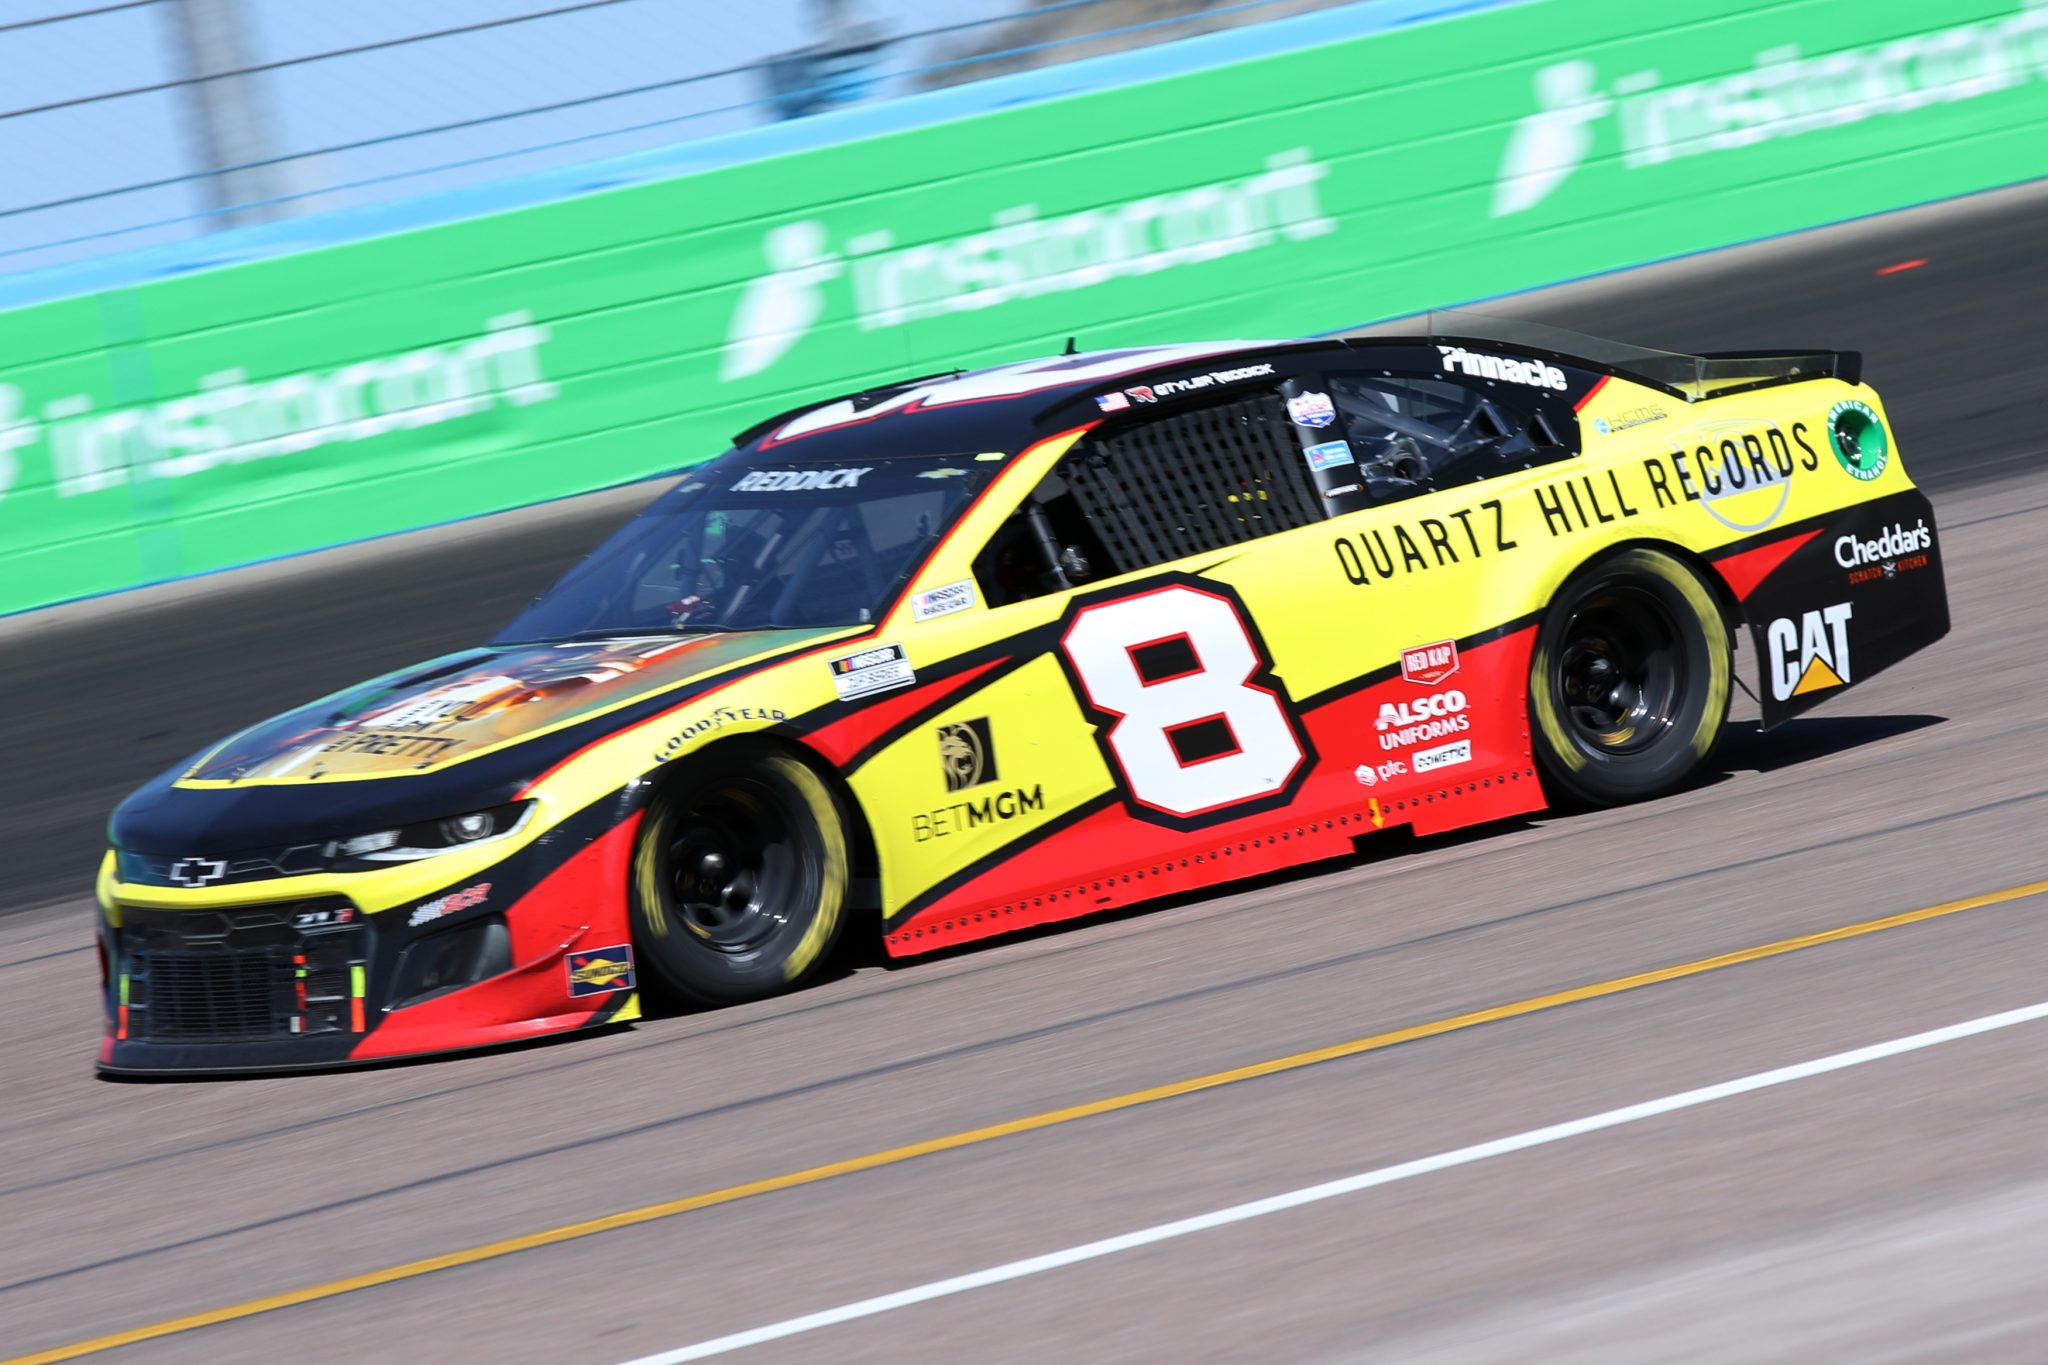 AVONDALE, ARIZONA - MARCH 14: Tyler Reddick, driver of the #8 Quartz Hill Records Chevrolet, drives during the NASCAR Cup Series Instacart 500 at Phoenix Raceway on March 14, 2021 in Avondale, Arizona. (Photo by Sean Gardner/Getty Images) | Getty Images